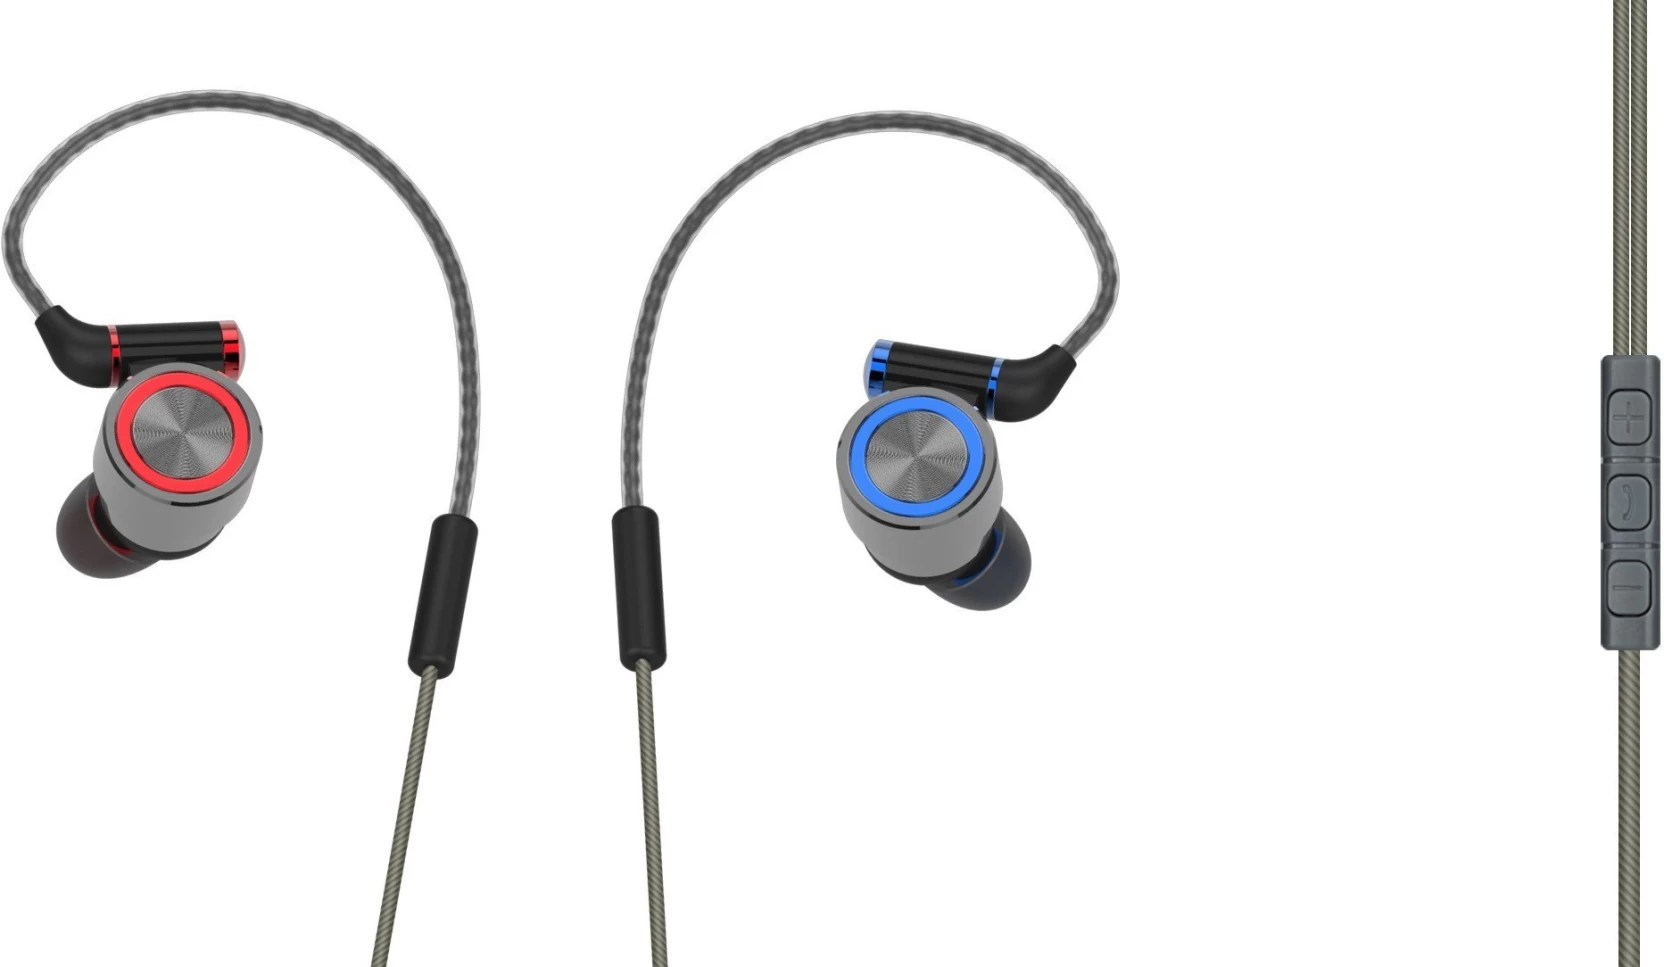 medium resolution of skywater selfie earphone grey colour wired headset with mic grey in the ear